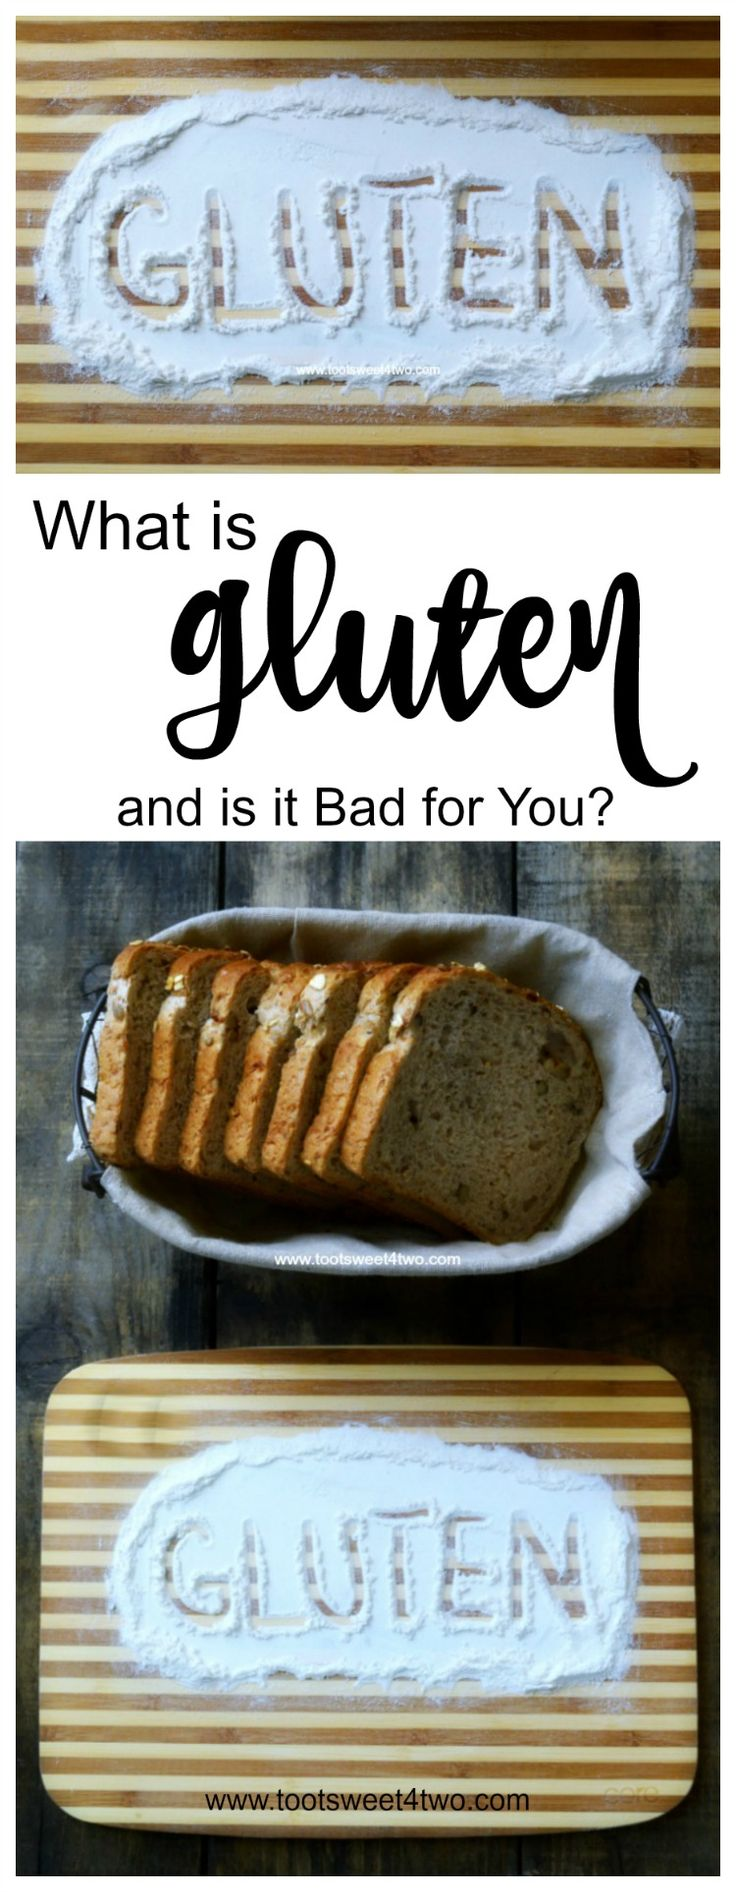 What is gluten and is it bad for you? A protein found in rye, barley, grains and wheat, many people are unaware that they have a gluten intolerance or sensitivity until symptoms appear. Is a gluten free diet beneficial? Eliminating gluten from your diet might sound easy but today's pre-packaged foods and restaurant meals present a challenge. | www.tootsweet4two.com